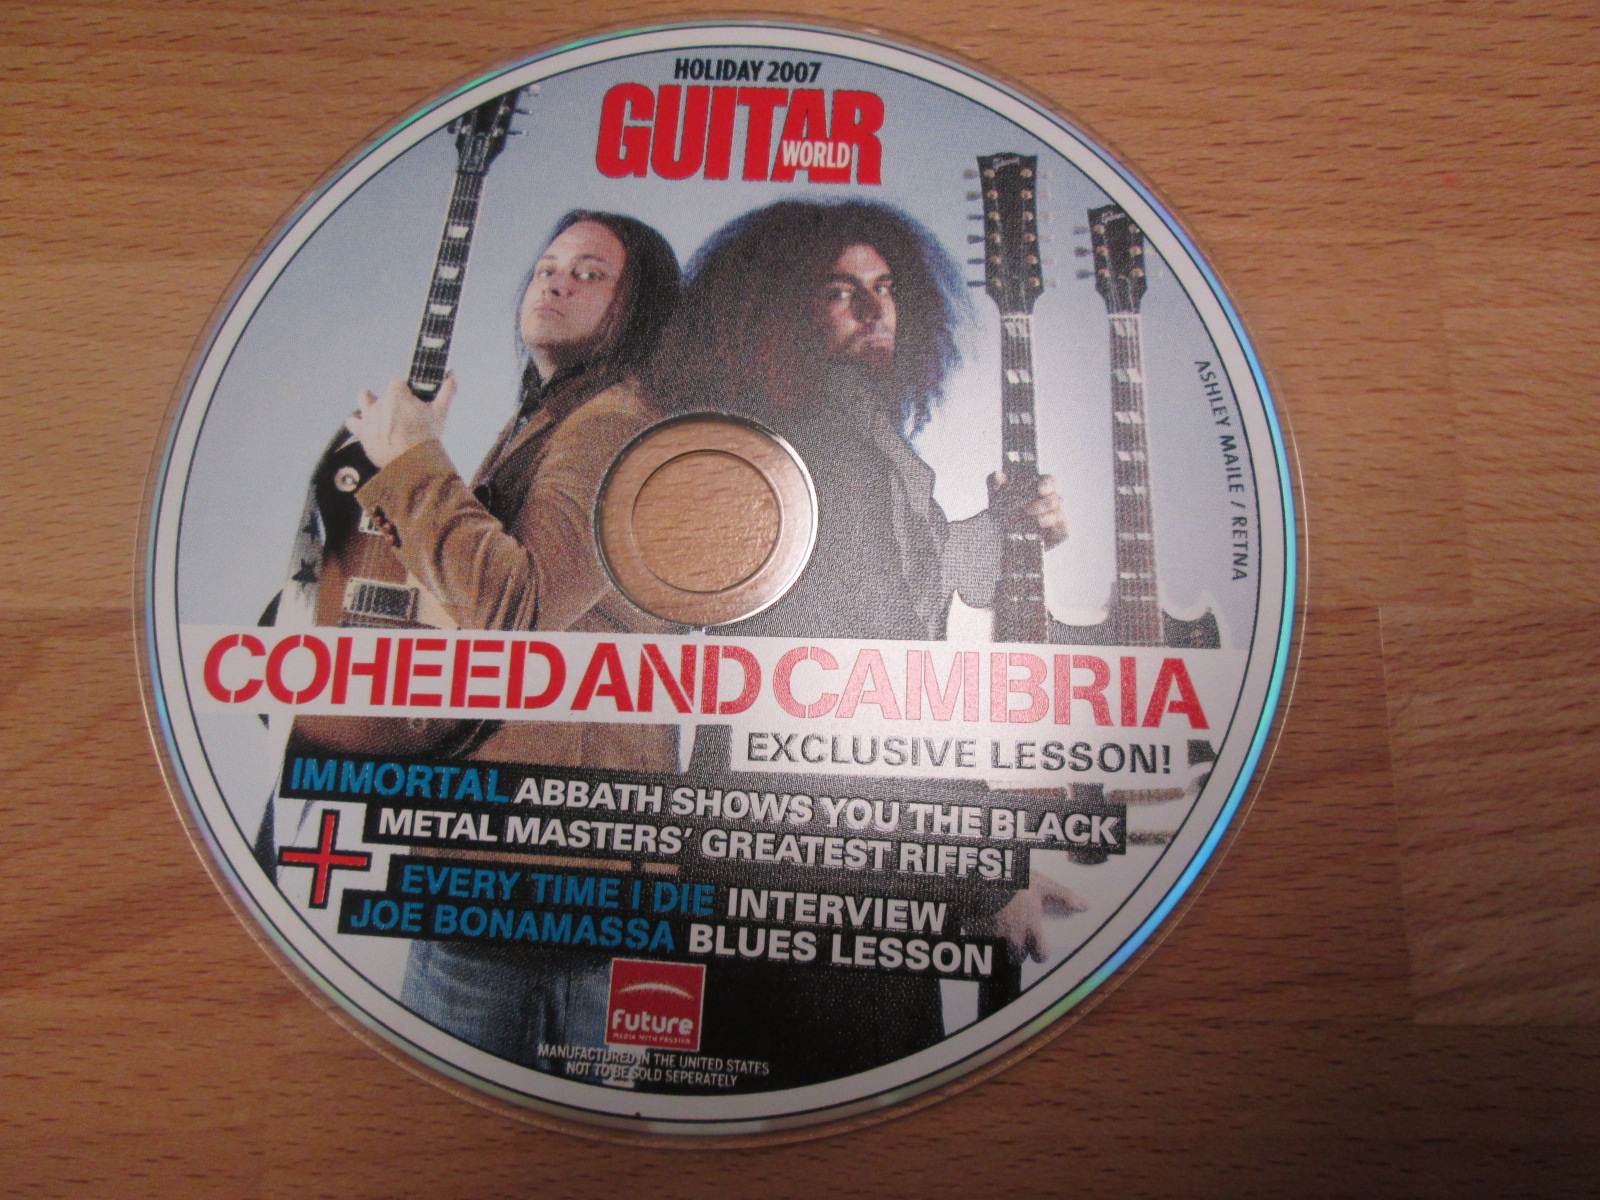 Guitar World CD-Rom Holiday 2007 Featuring Coheed And Cambria Immortal